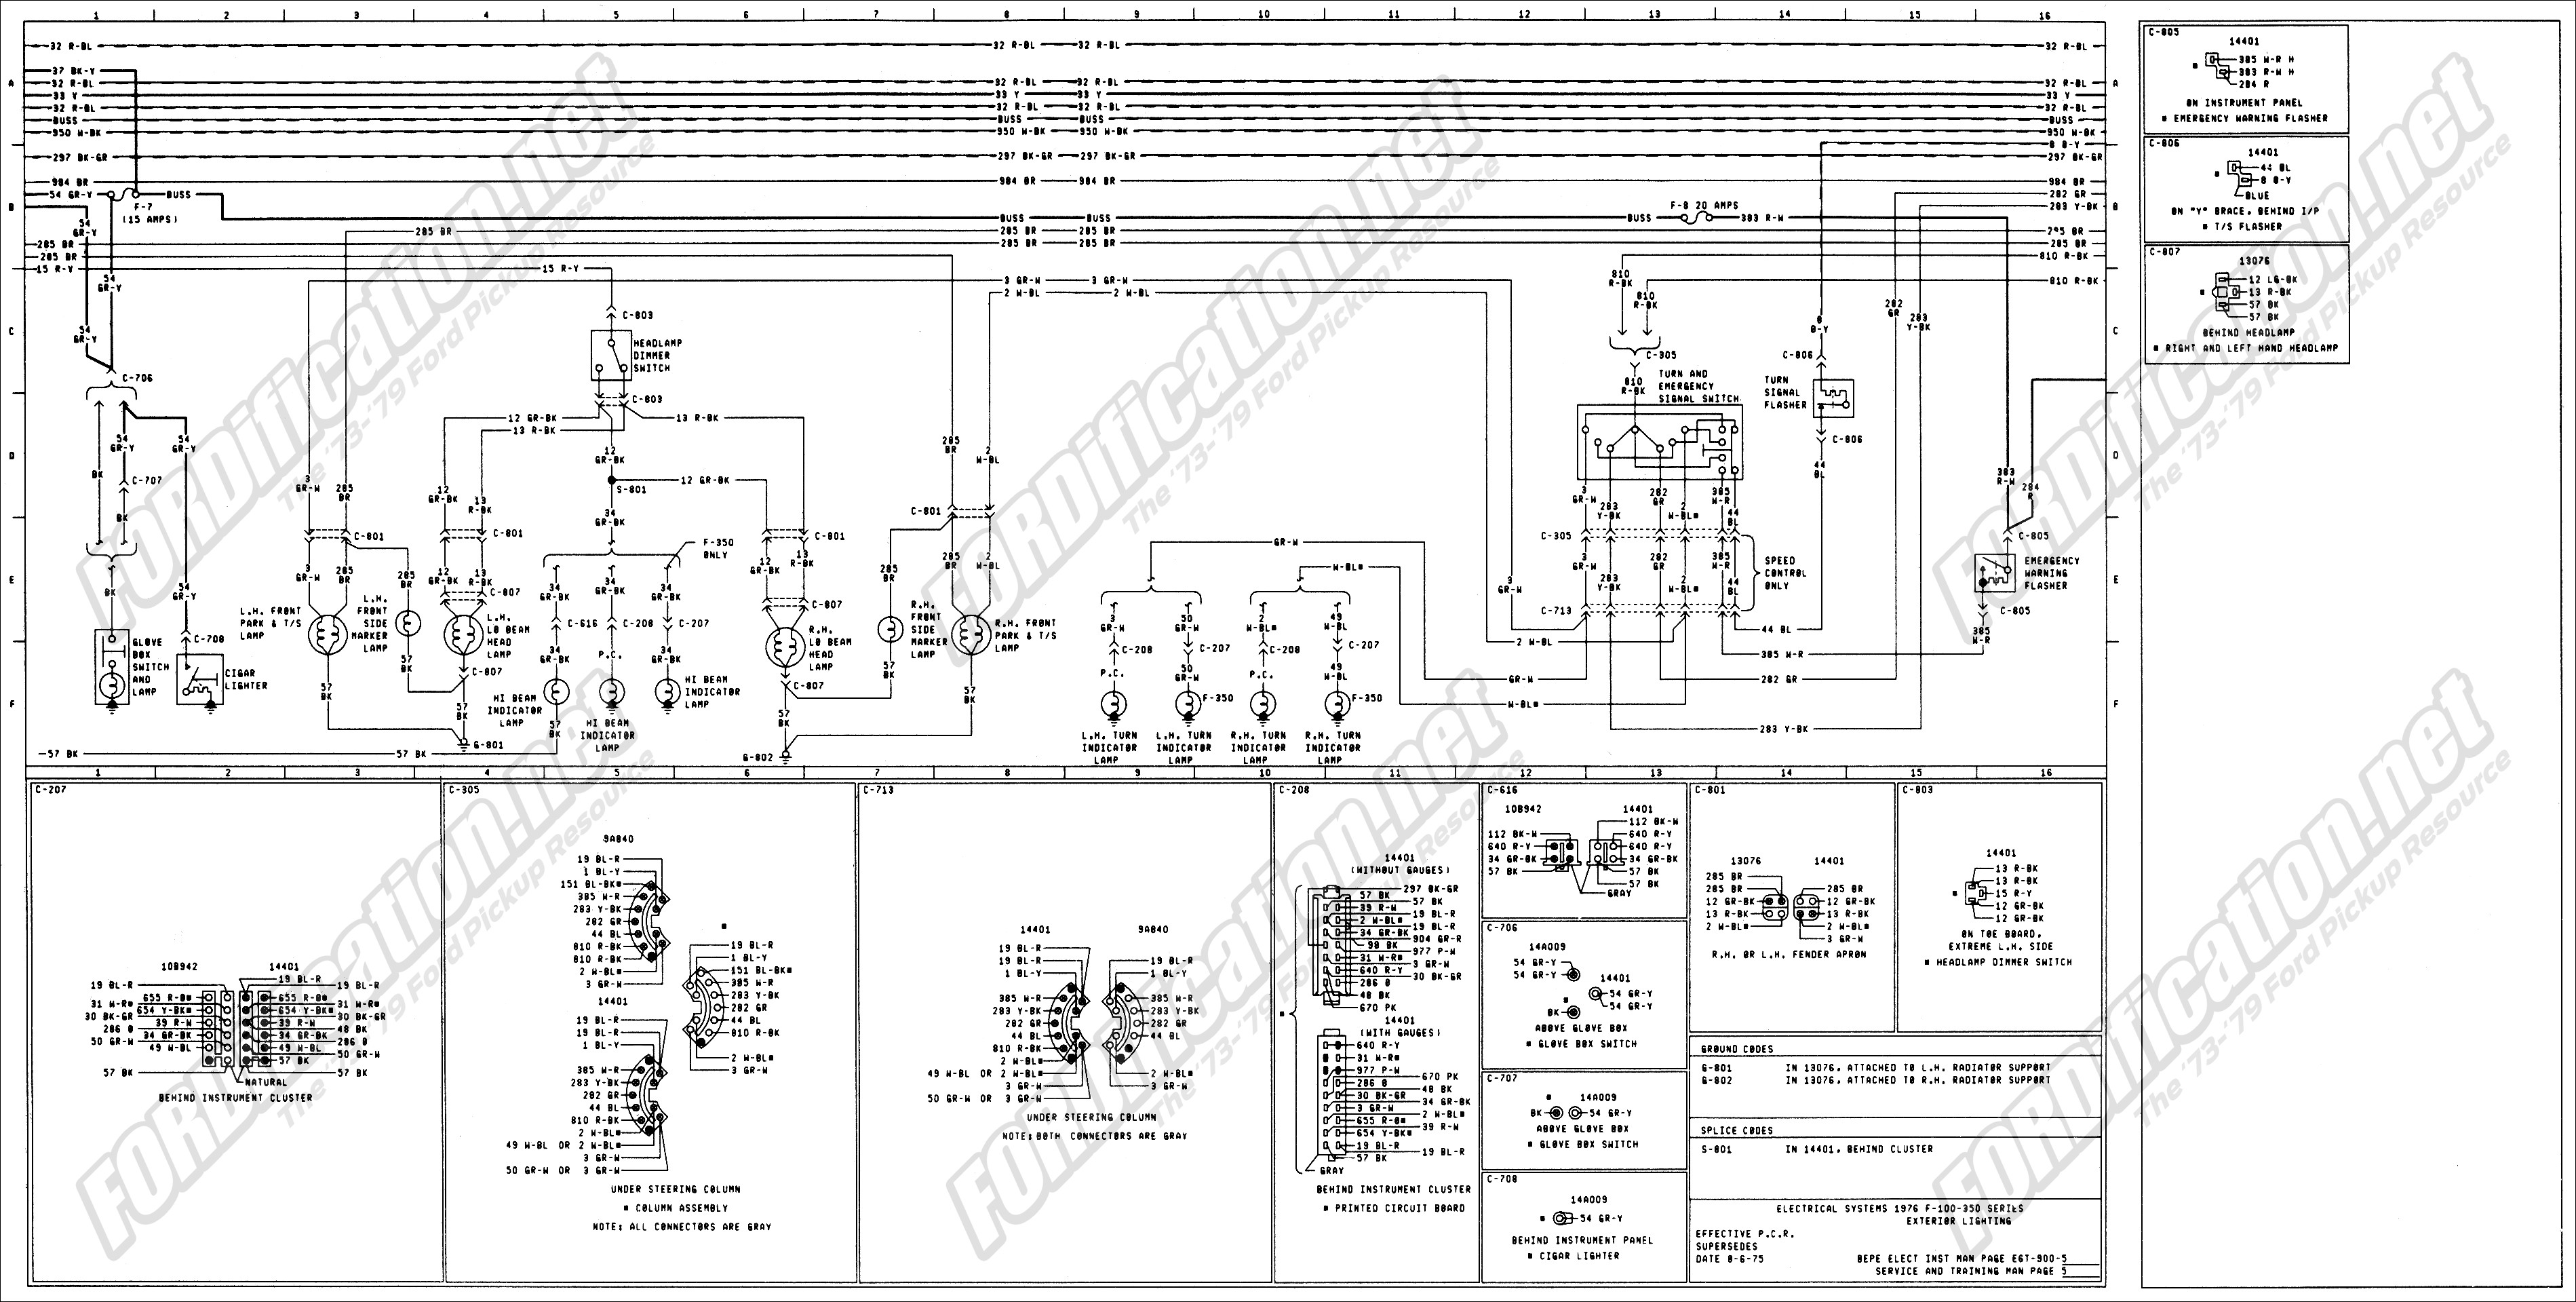 Wire Diagram for 2002 F550 Tail Lights 1973 1979 ford Truck Wiring Diagrams & Schematics Of Wire Diagram for 2002 F550 Tail Lights 1973 1979 ford Truck Wiring Diagrams & Schematics